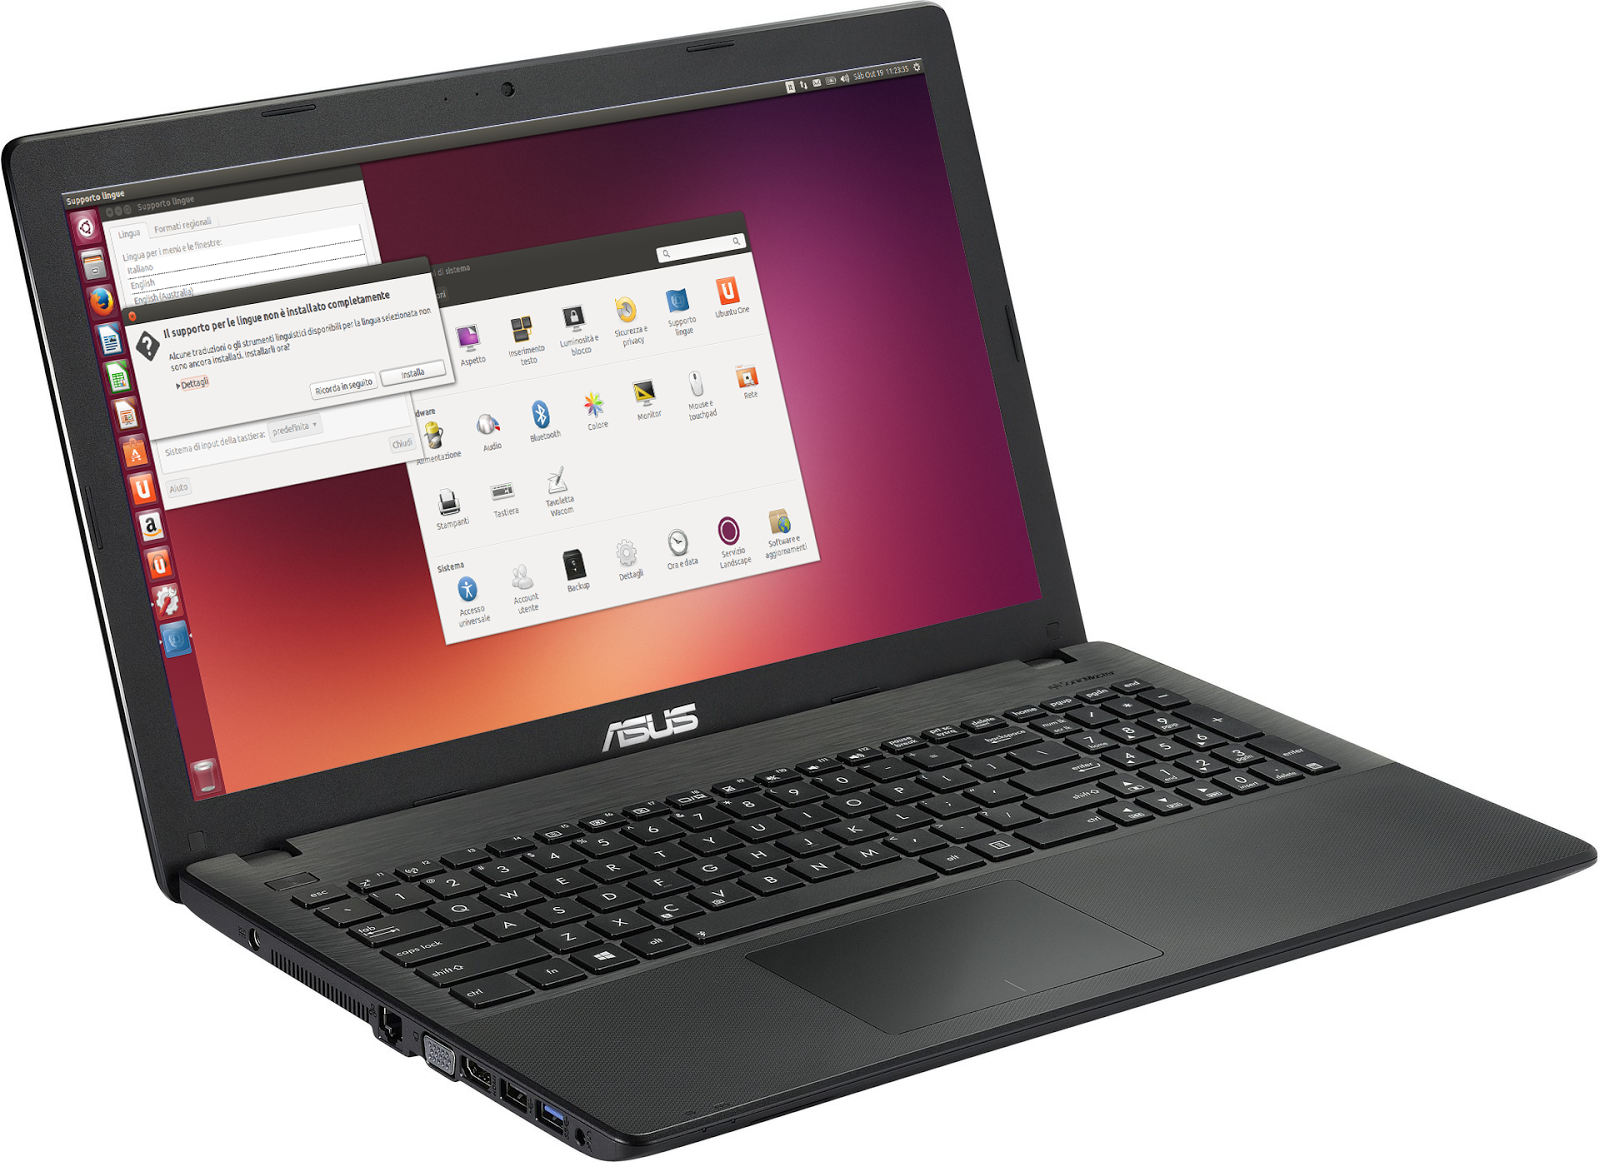 Asus X551C Notebook PC Price, Full Specification & Review picture, photo, images